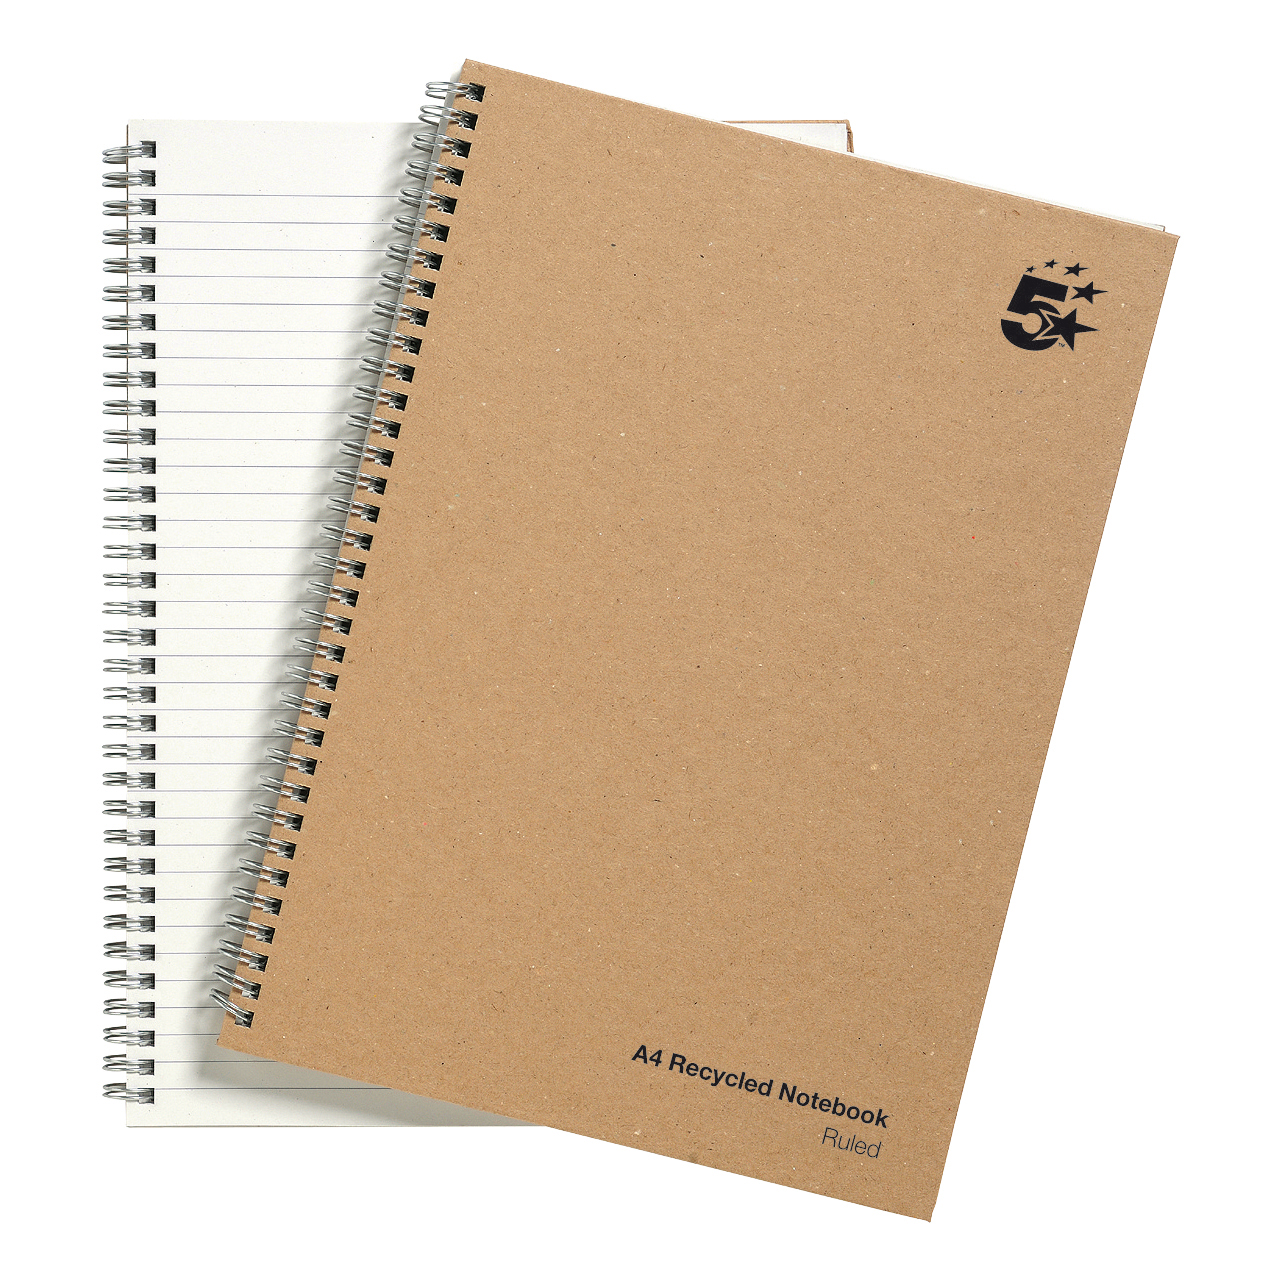 5 Star Eco Notebook Wirebound 80gsm Ruled Recycled 160pp A4 Buff Pack 5